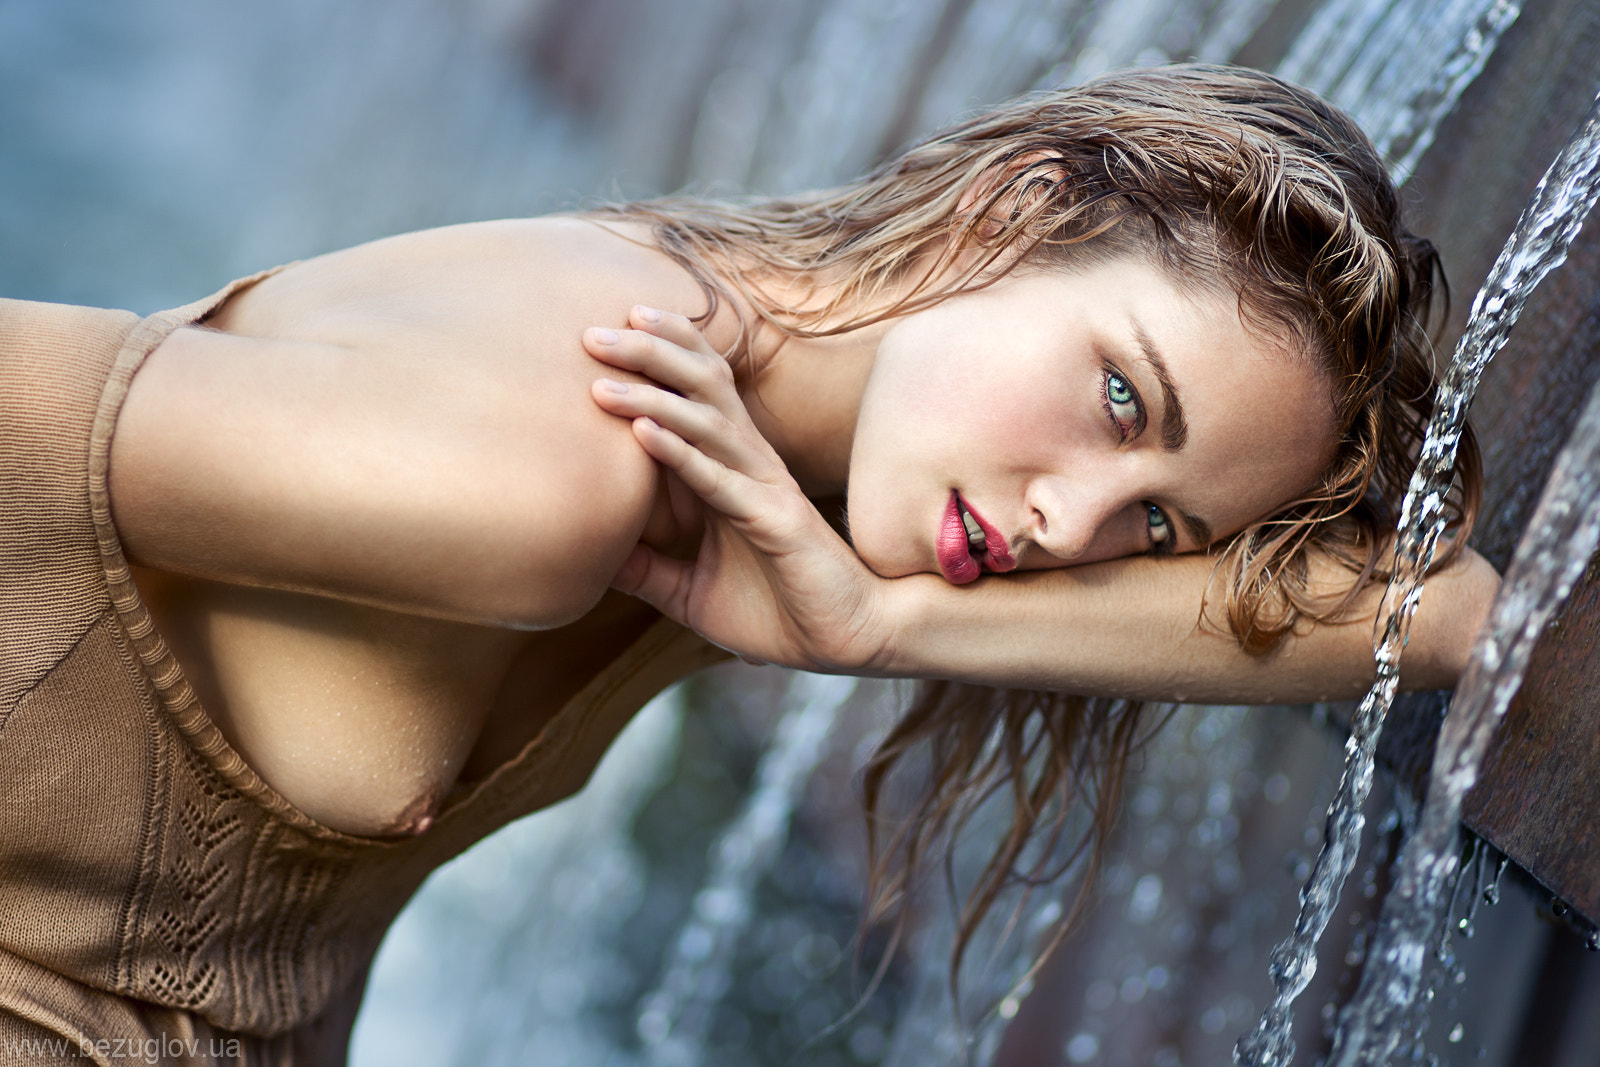 Photograph Wet by Andrey Bezuglov on 500px